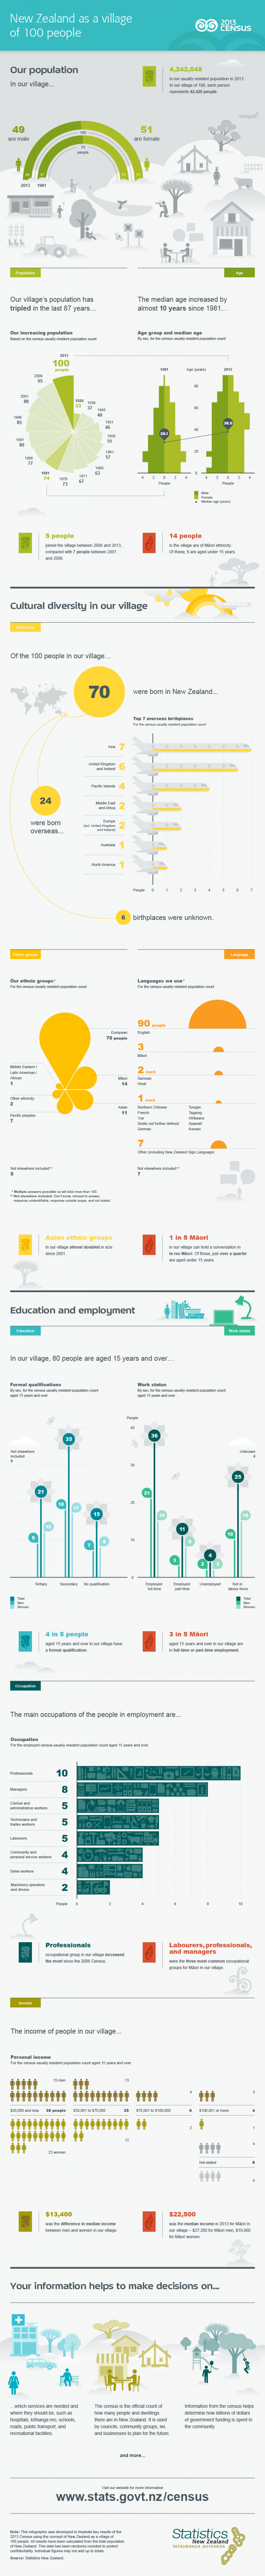 "2013 Census ""New Zealand As A Village Of 100 People"" Infographic"